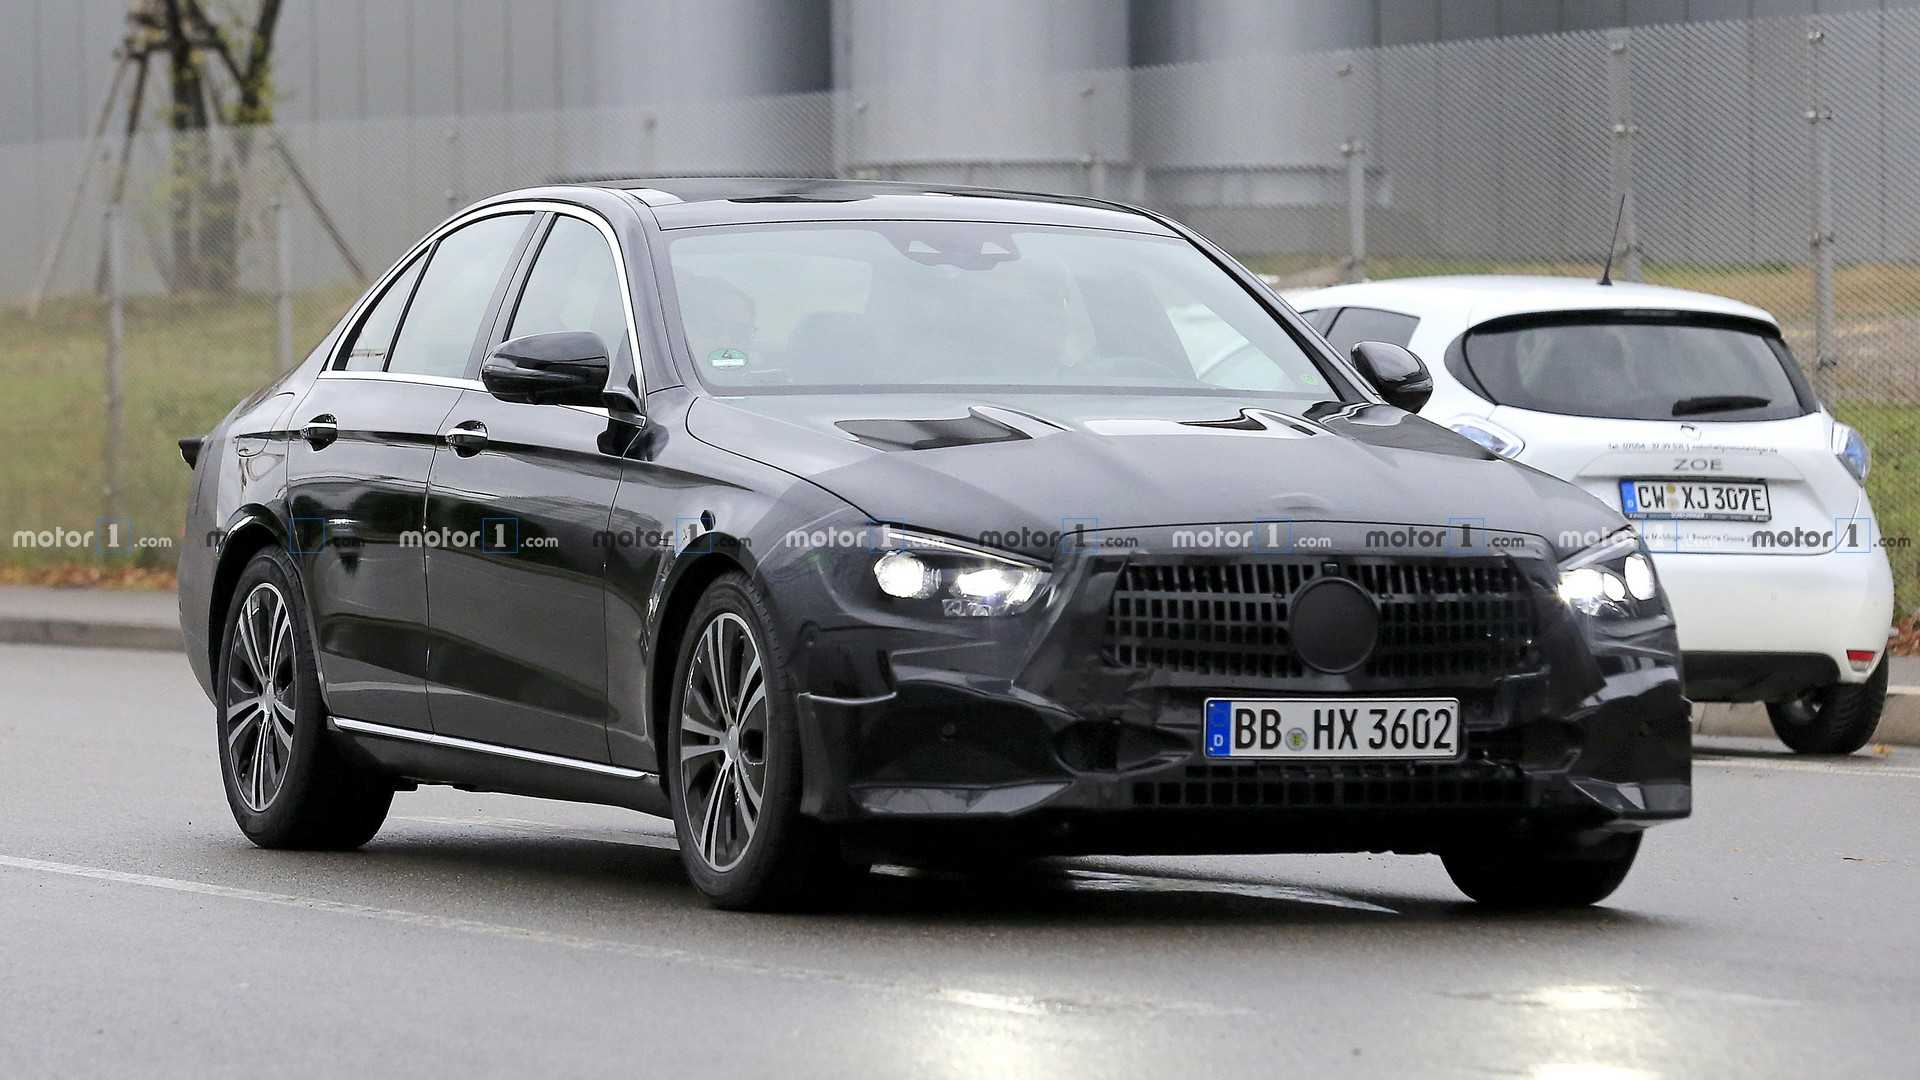 41 All New 2019 The Spy Shots Mercedes E Class Specs